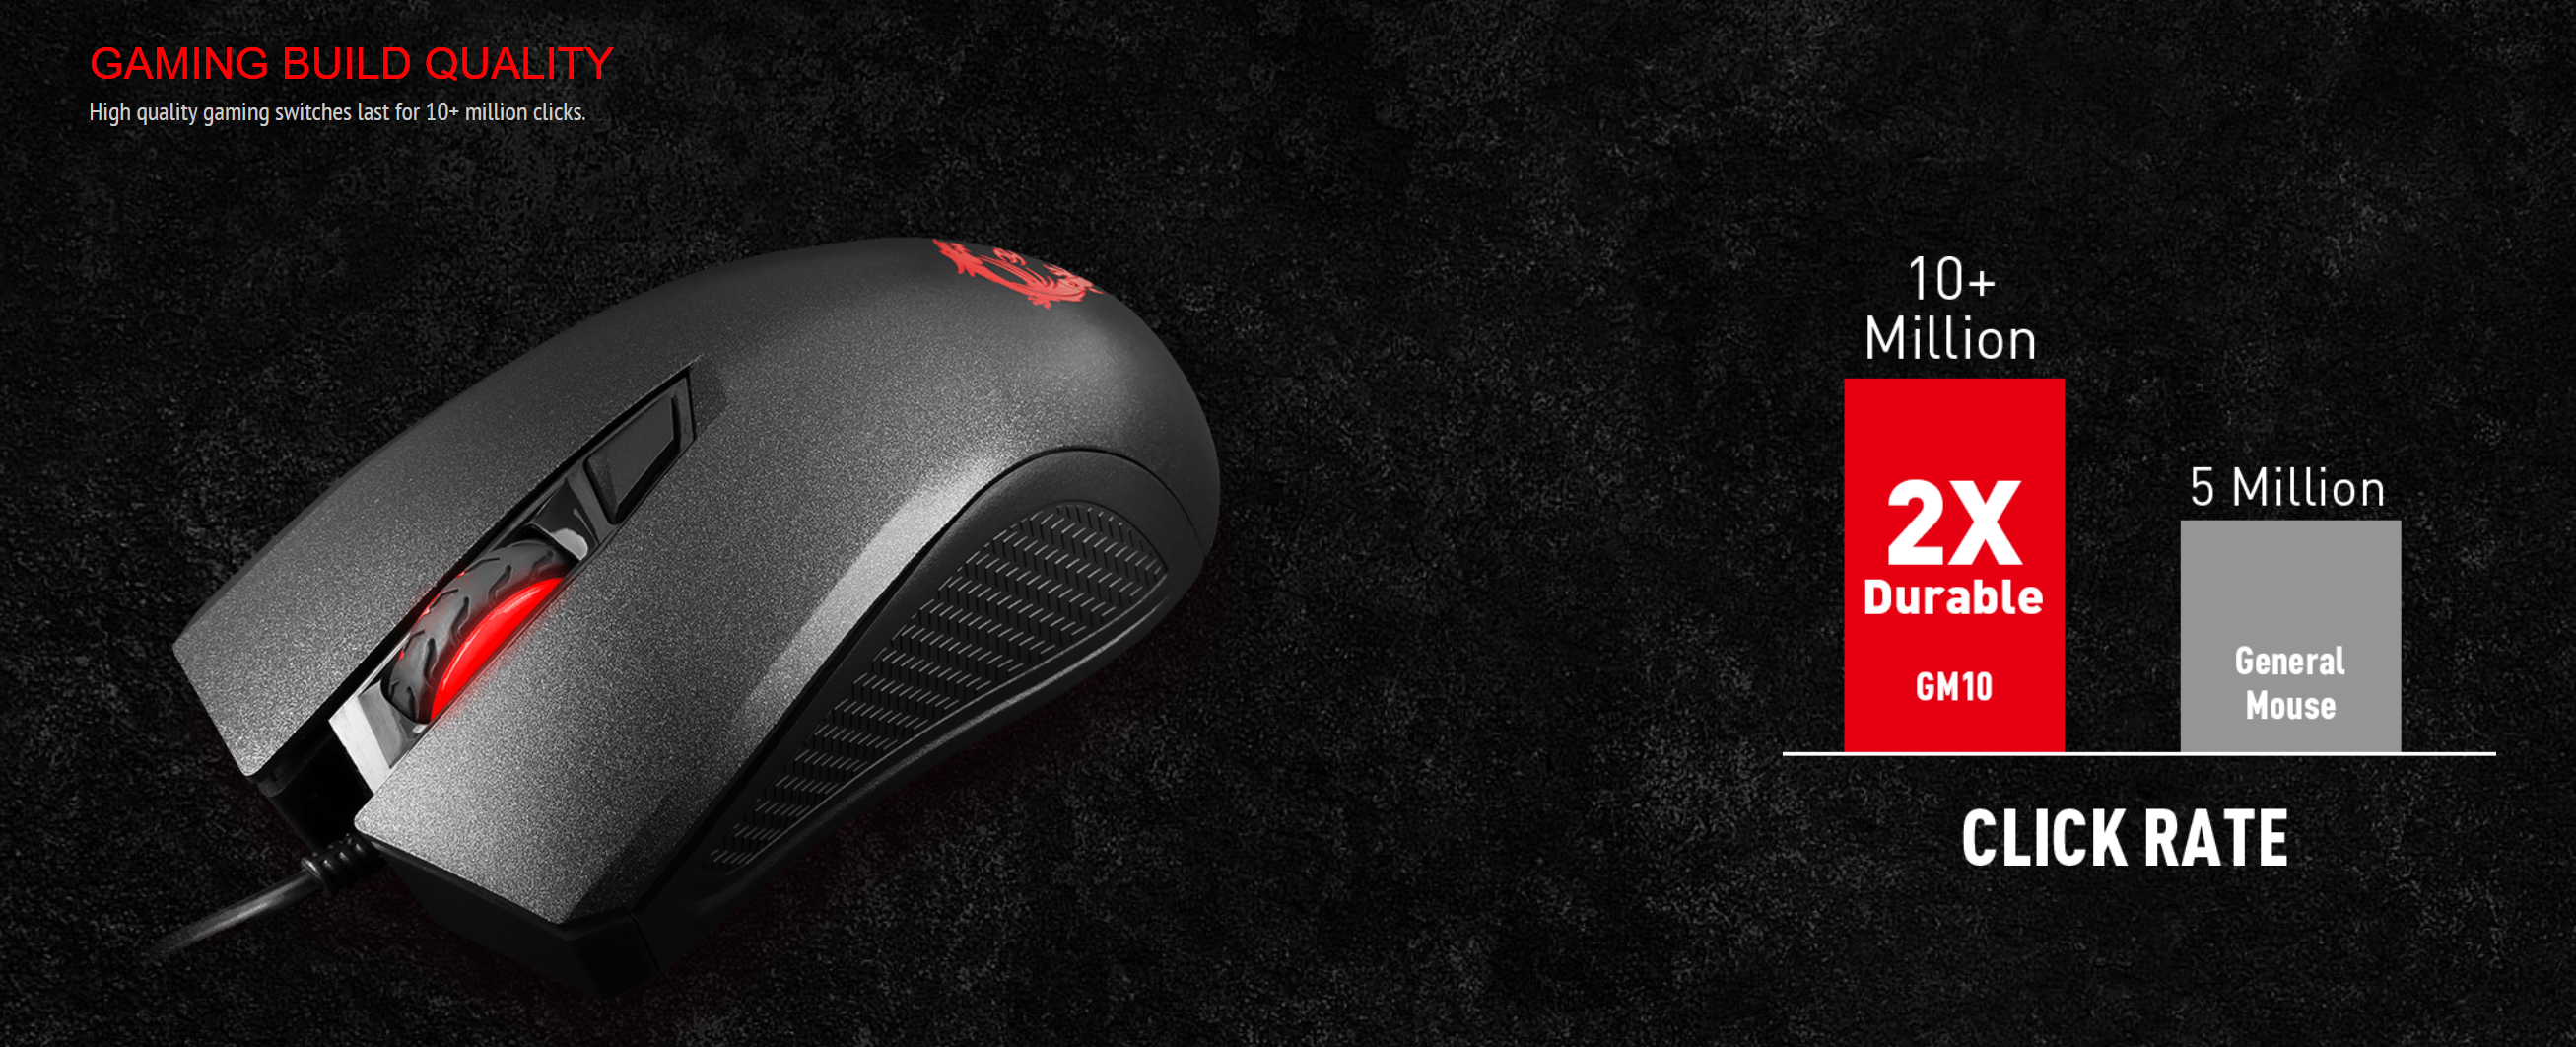 dc60f761bf0 MSI CLUTCH GM10 Gaming Mouse (Not for sale)